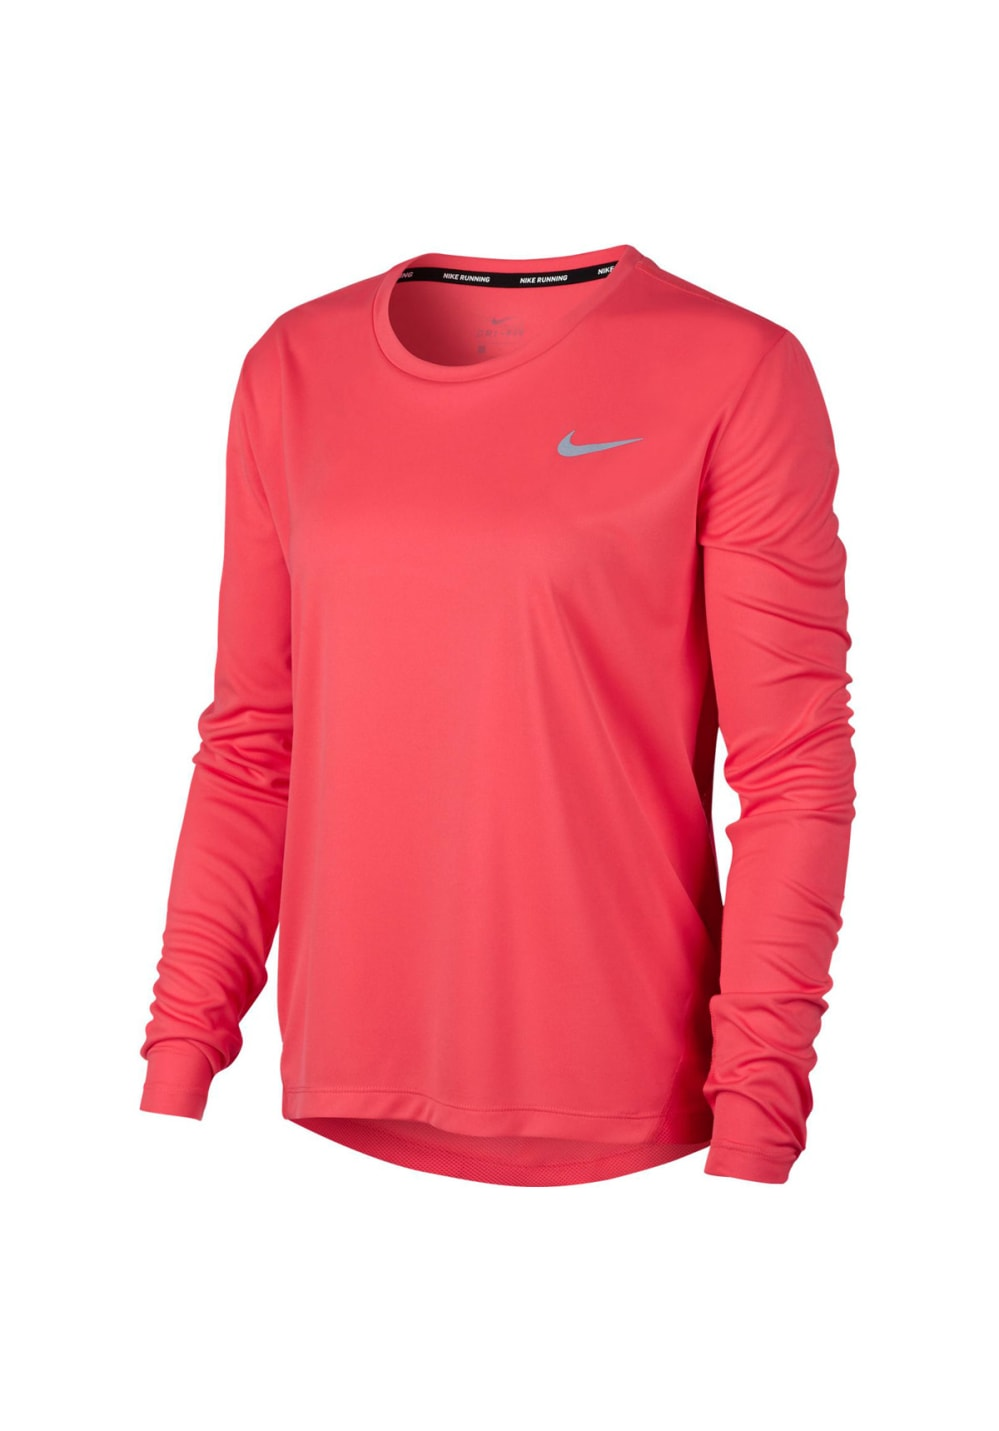 Pink Long Sleeve Nike Shirt | Coolmine Community School